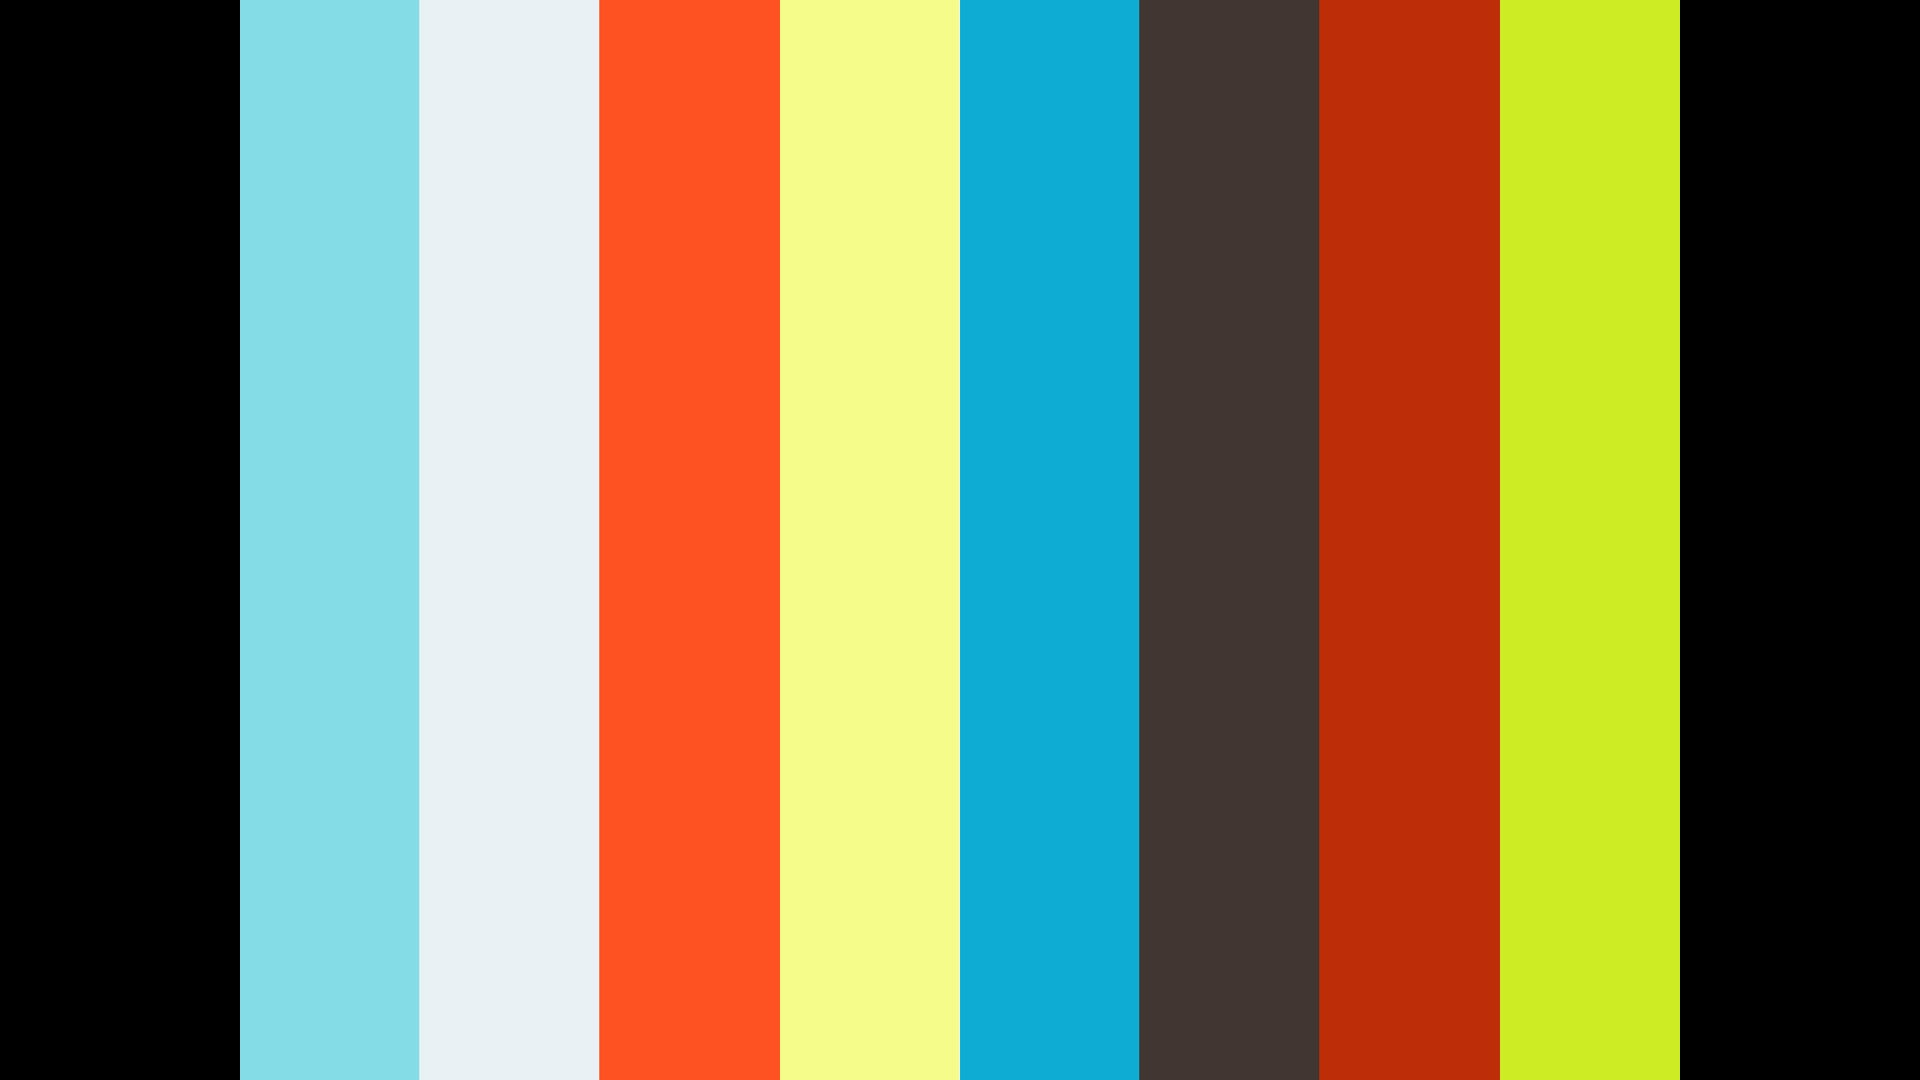 GammalTech at ChannelNext East 2019